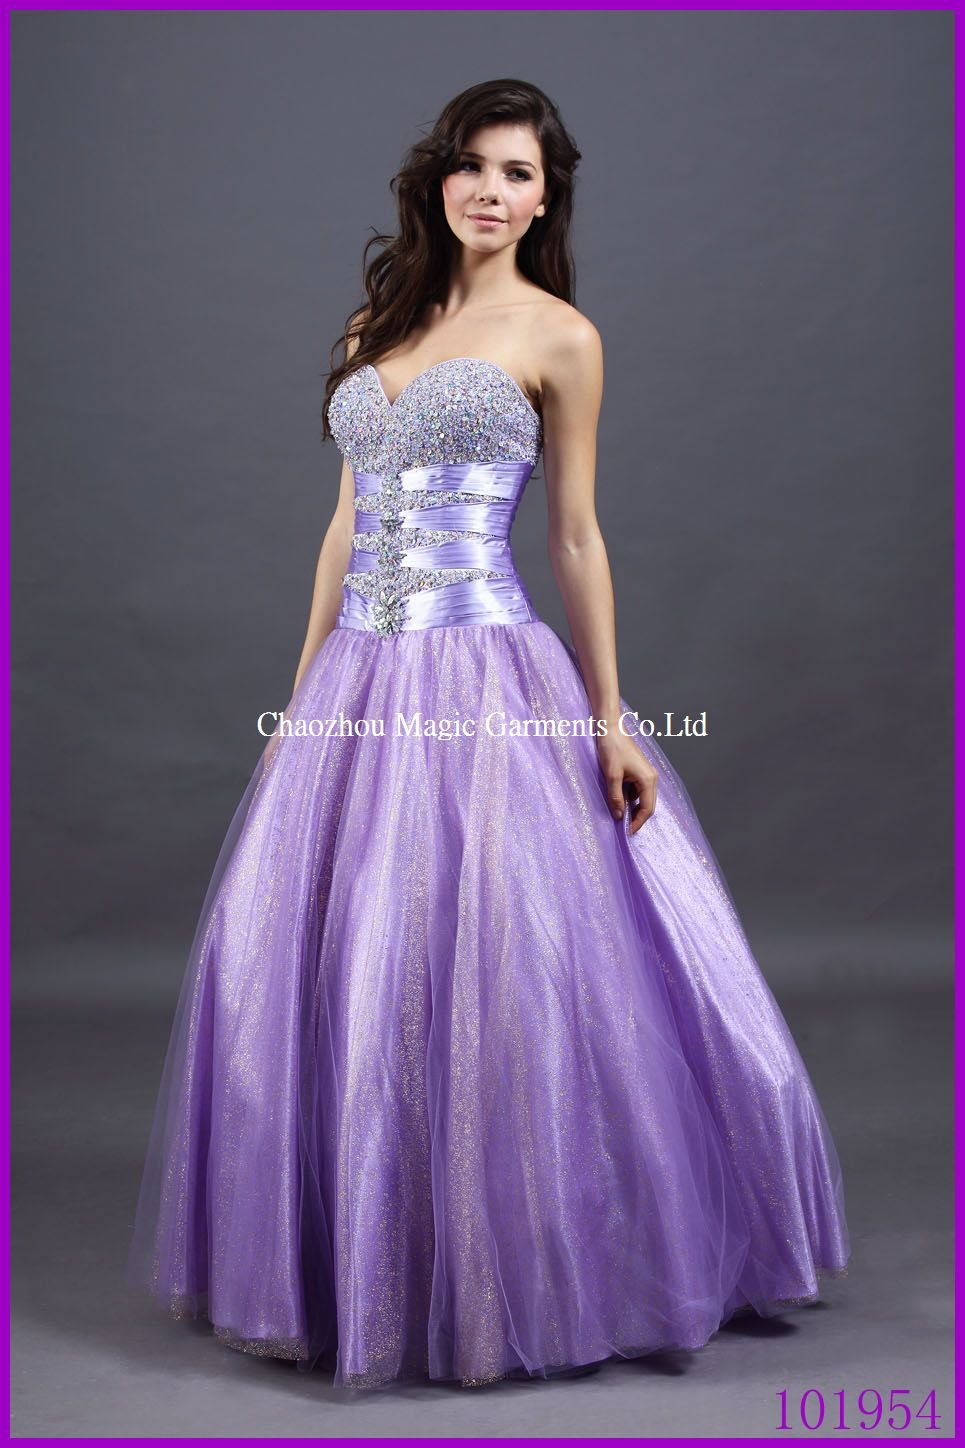 Long Purple Wedding Dresses : Purple ball gown wedding dresses plus size long sleeve